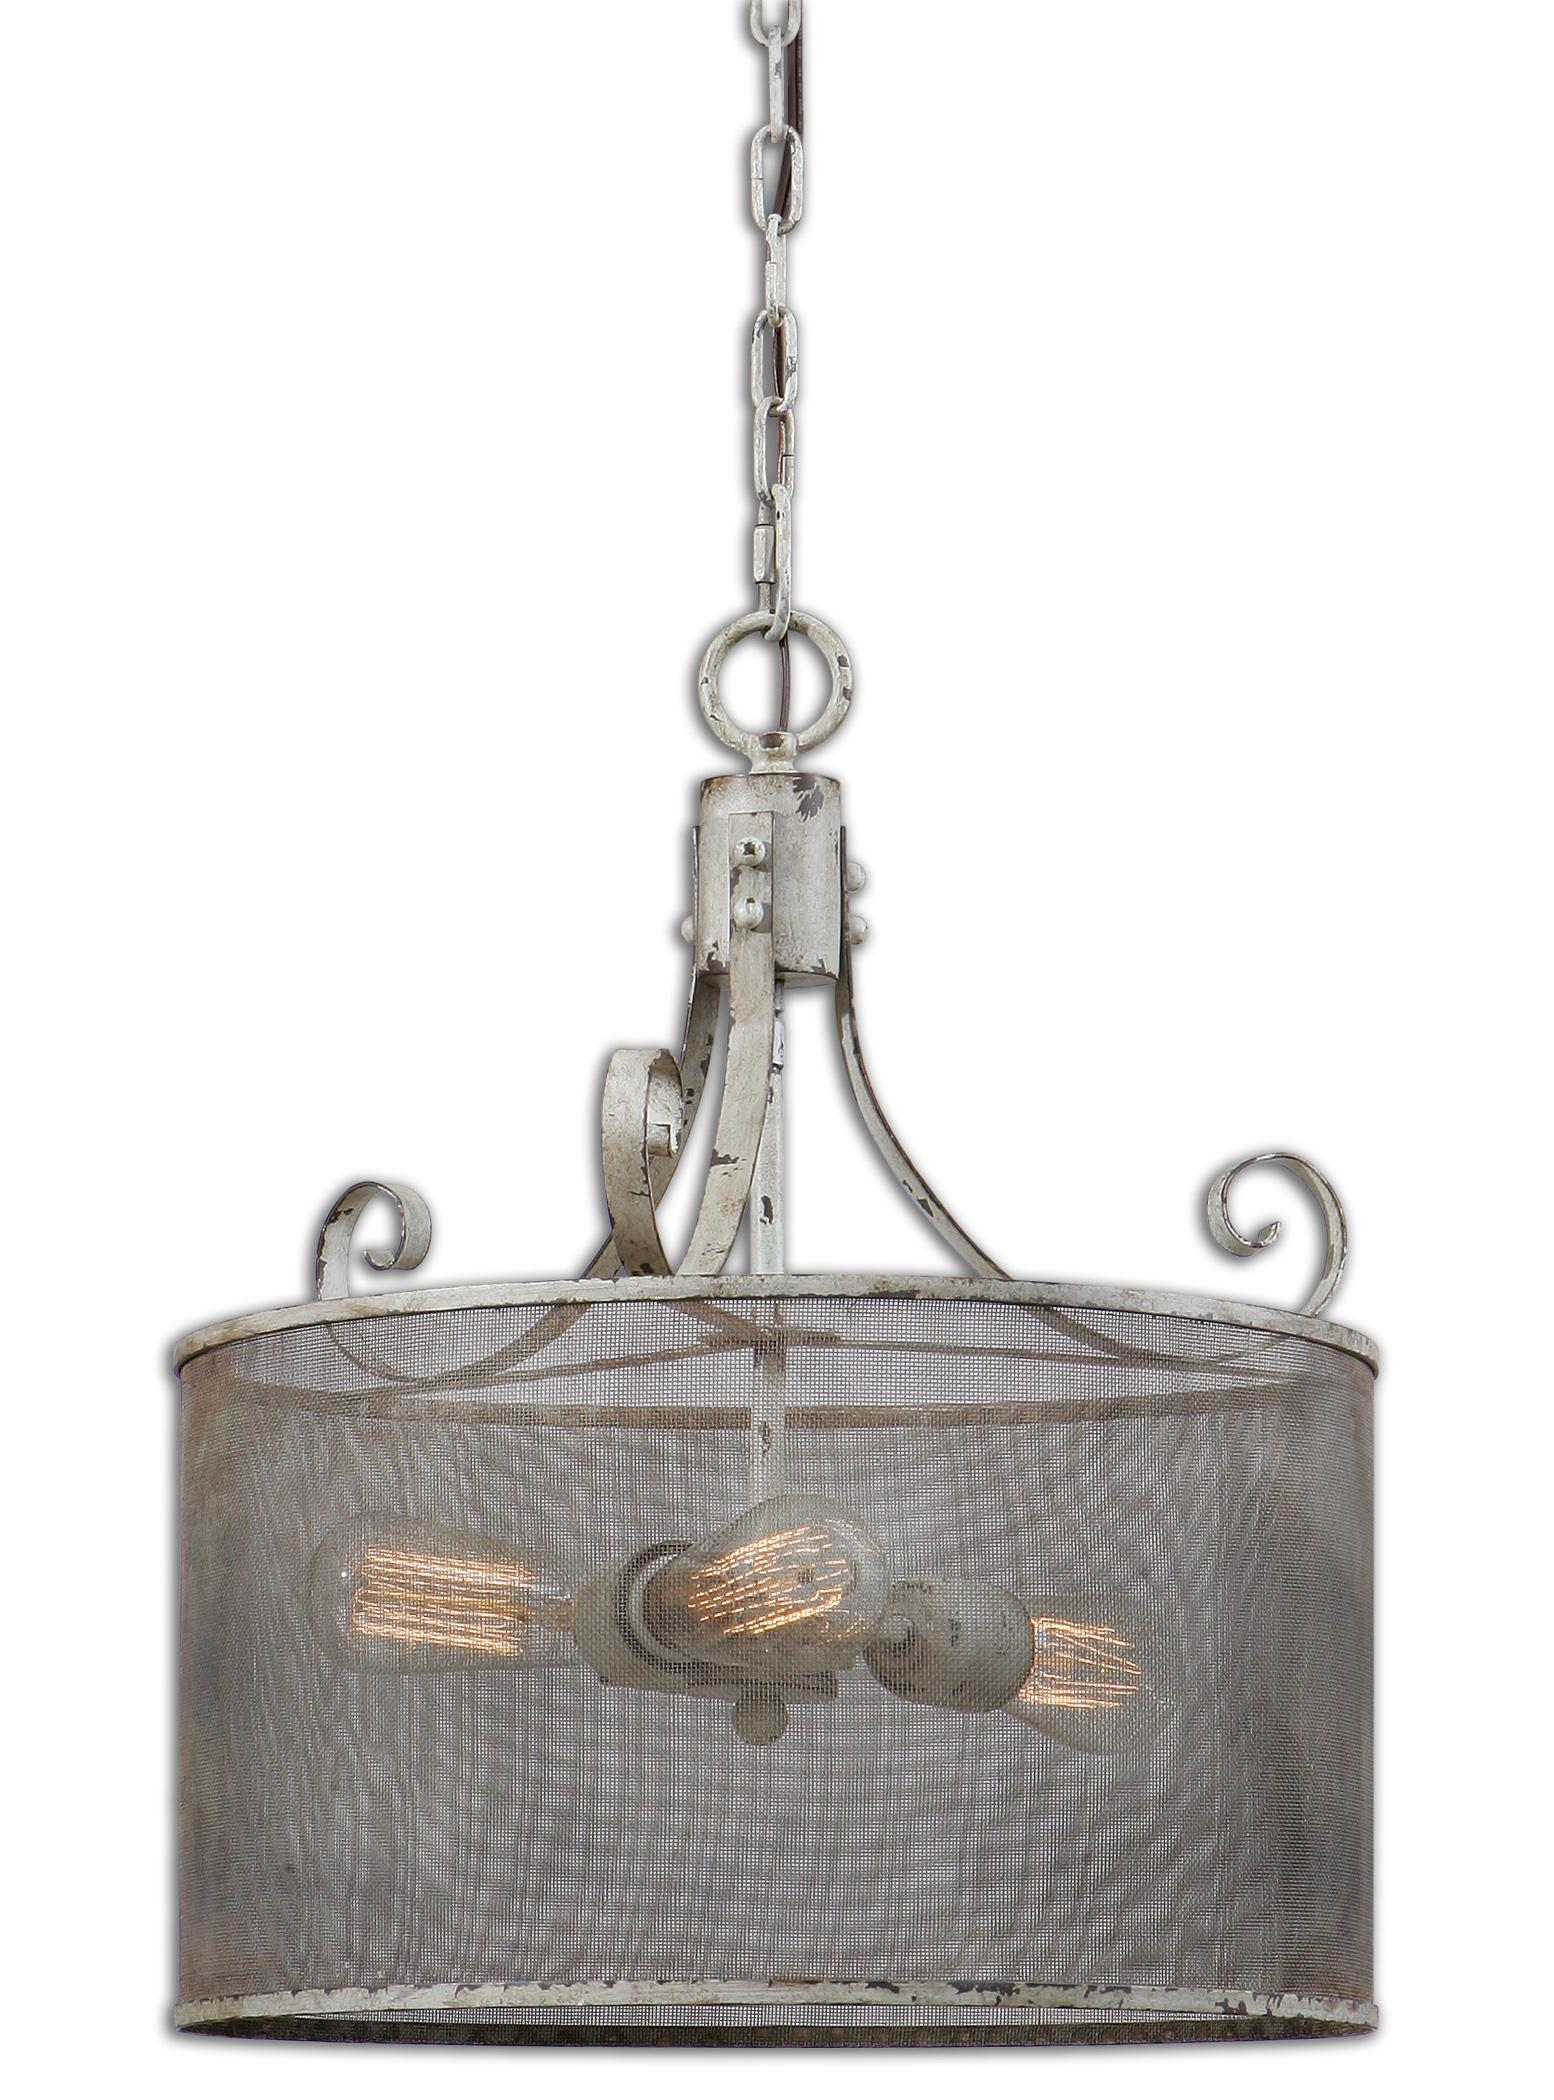 Uttermost Lighting Fixtures Pontoise 3 Light Drum Pendant - Item Number: 22004